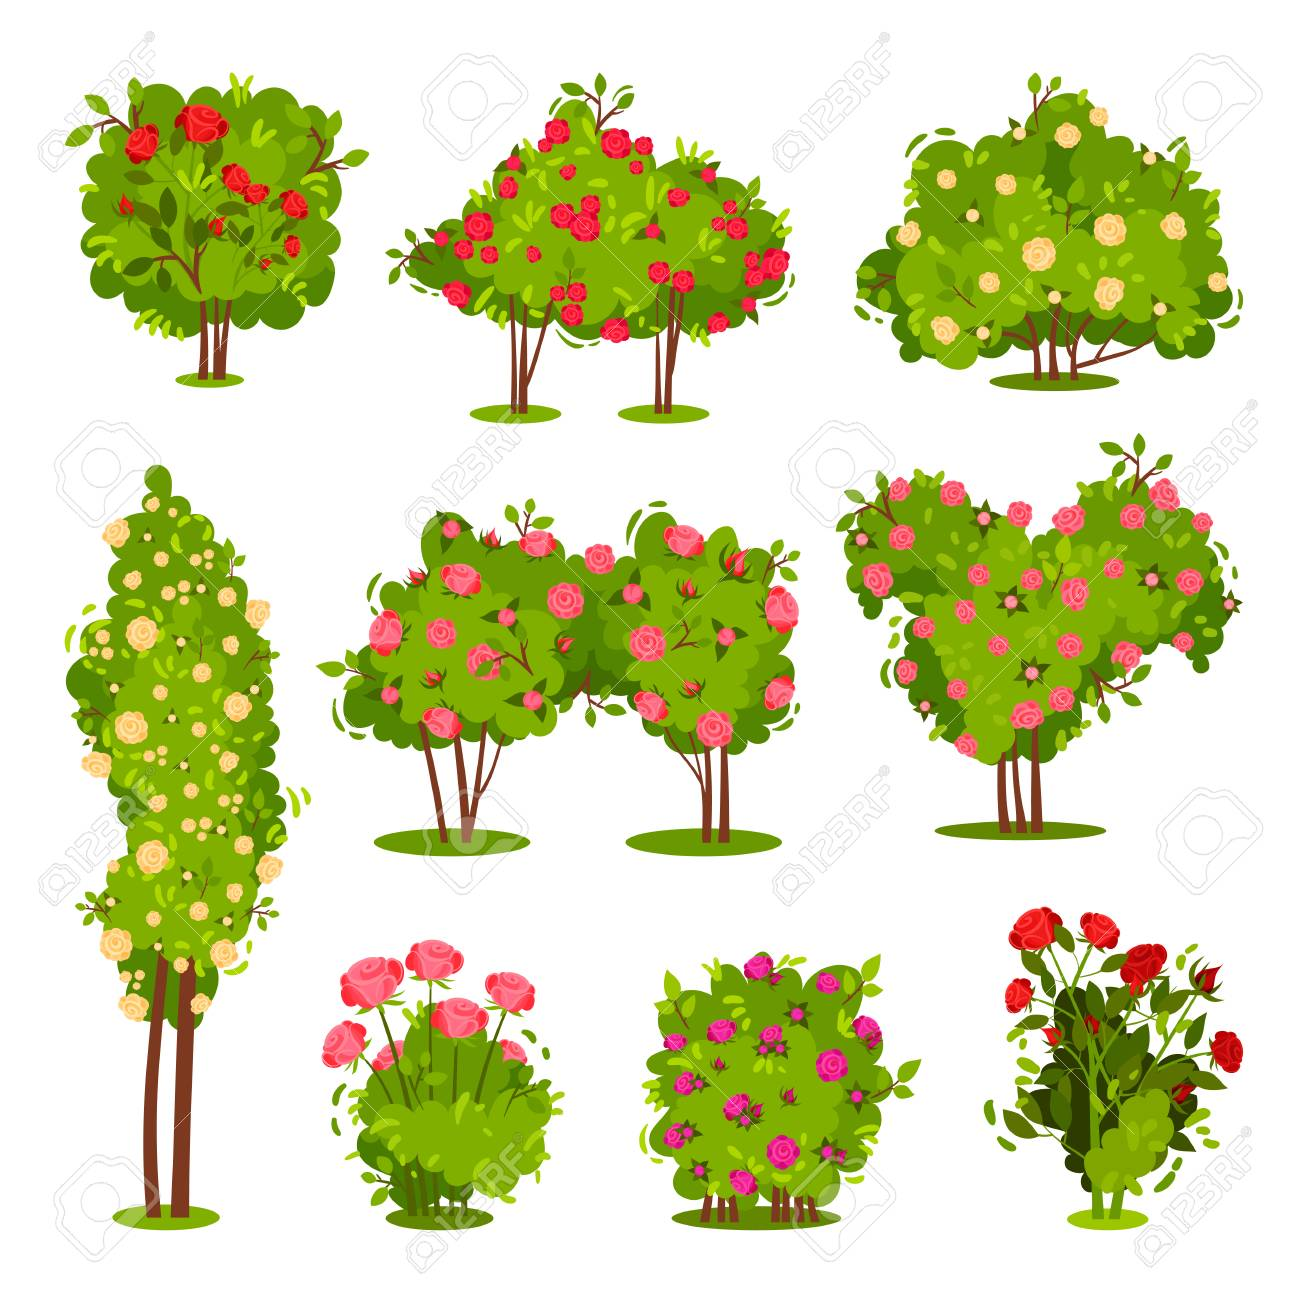 Collection of roses bushes. Flowering garden plants. Green shrubs with beautiful flowers. Landscape elements. Nature and botany theme. Colorful flat vector illustrations isolated on white background. - 124765761